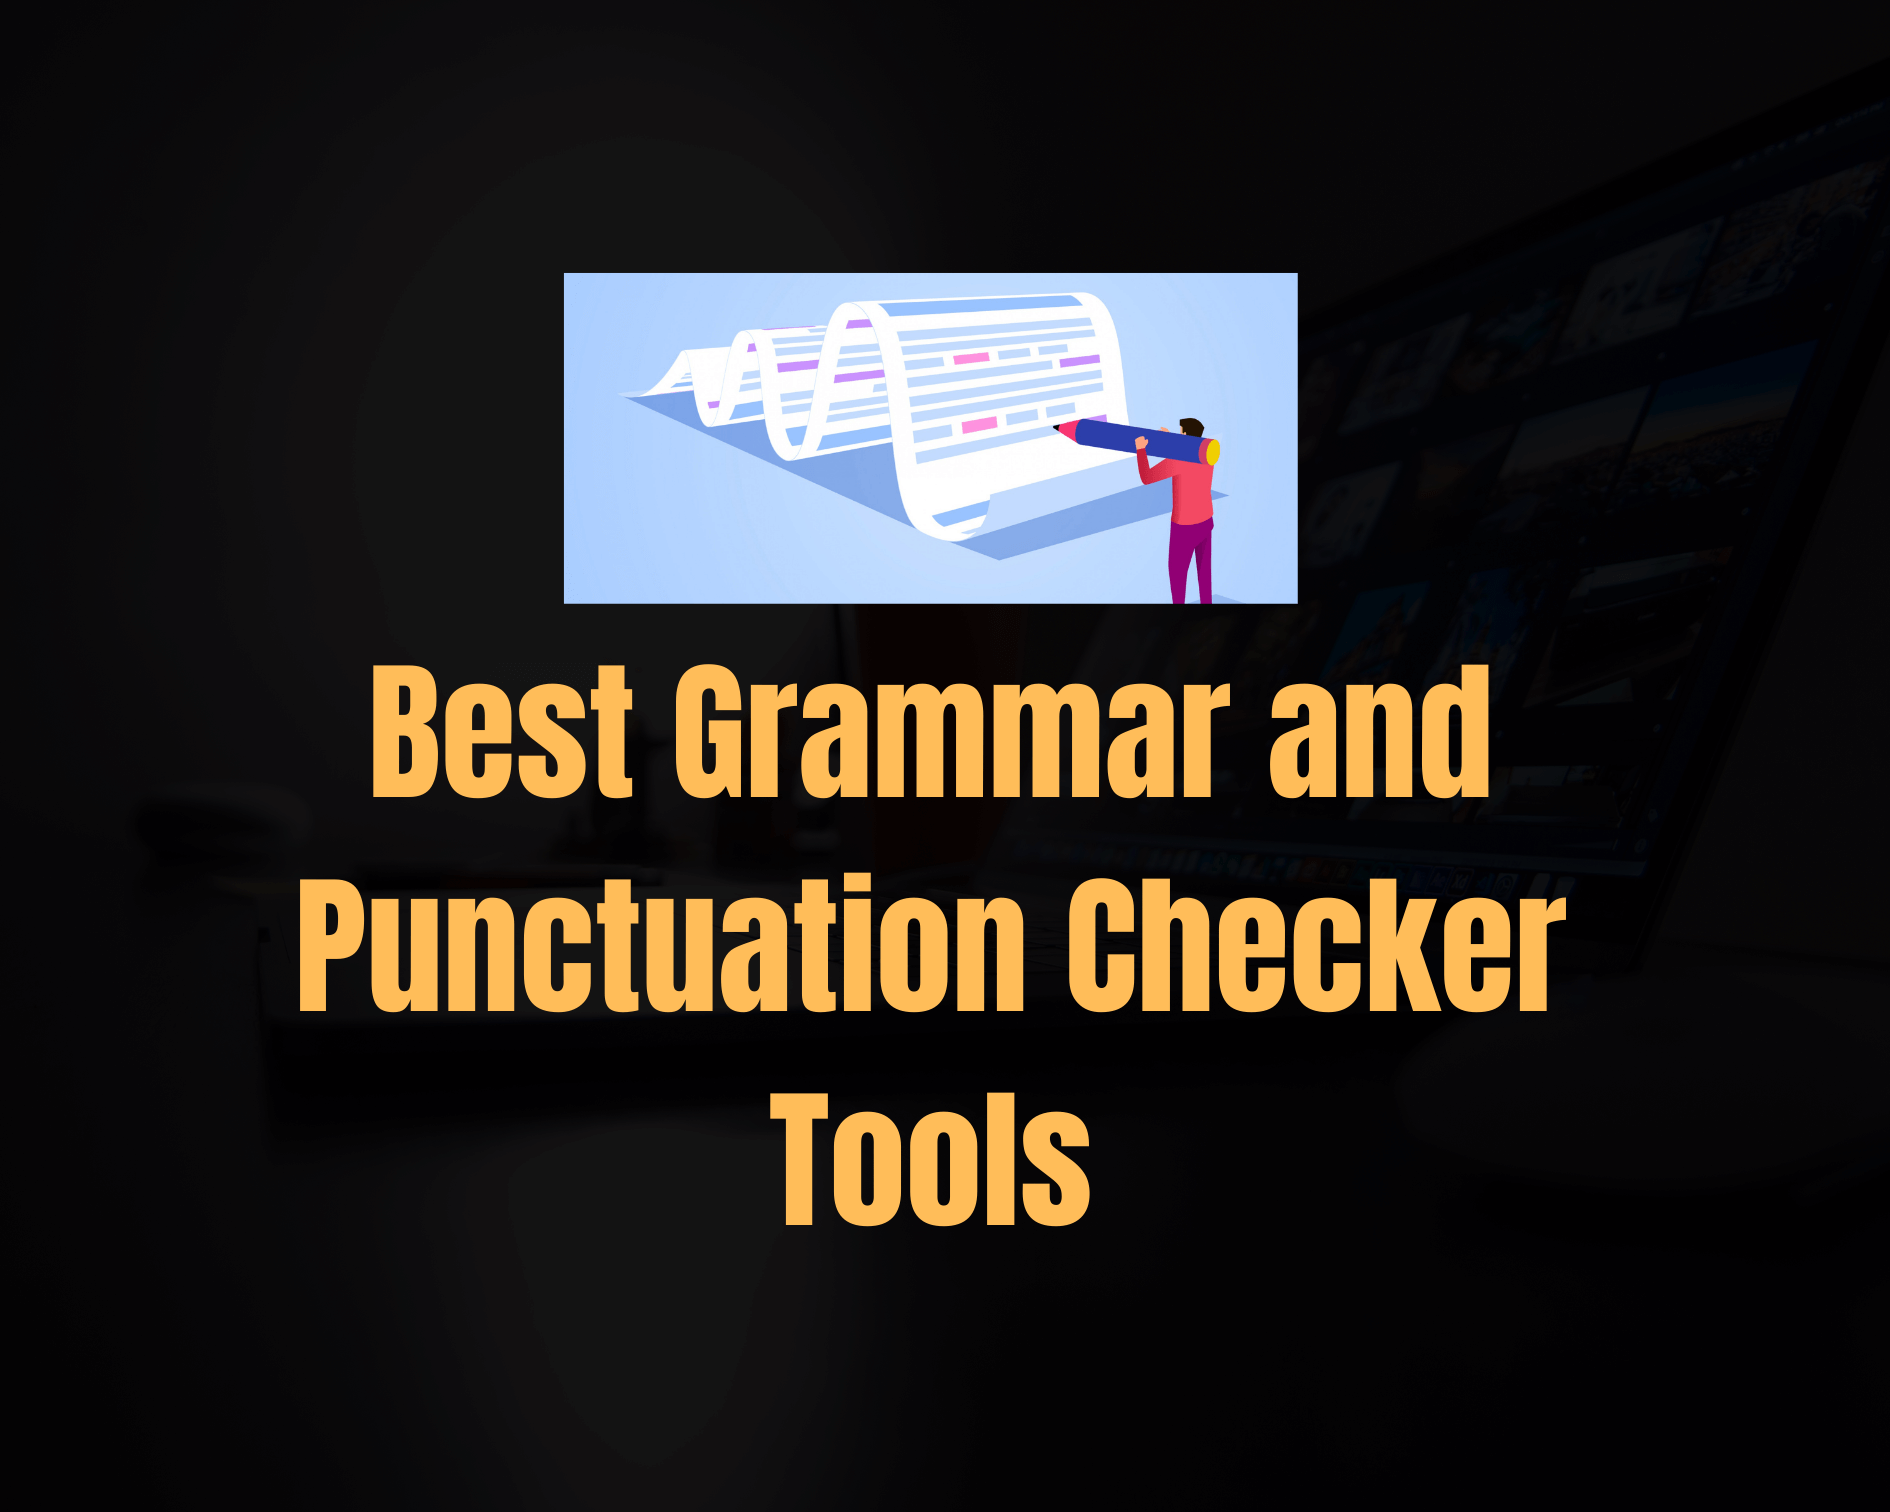 15 Best Grammar and Punctuation Checker Tools in 2021